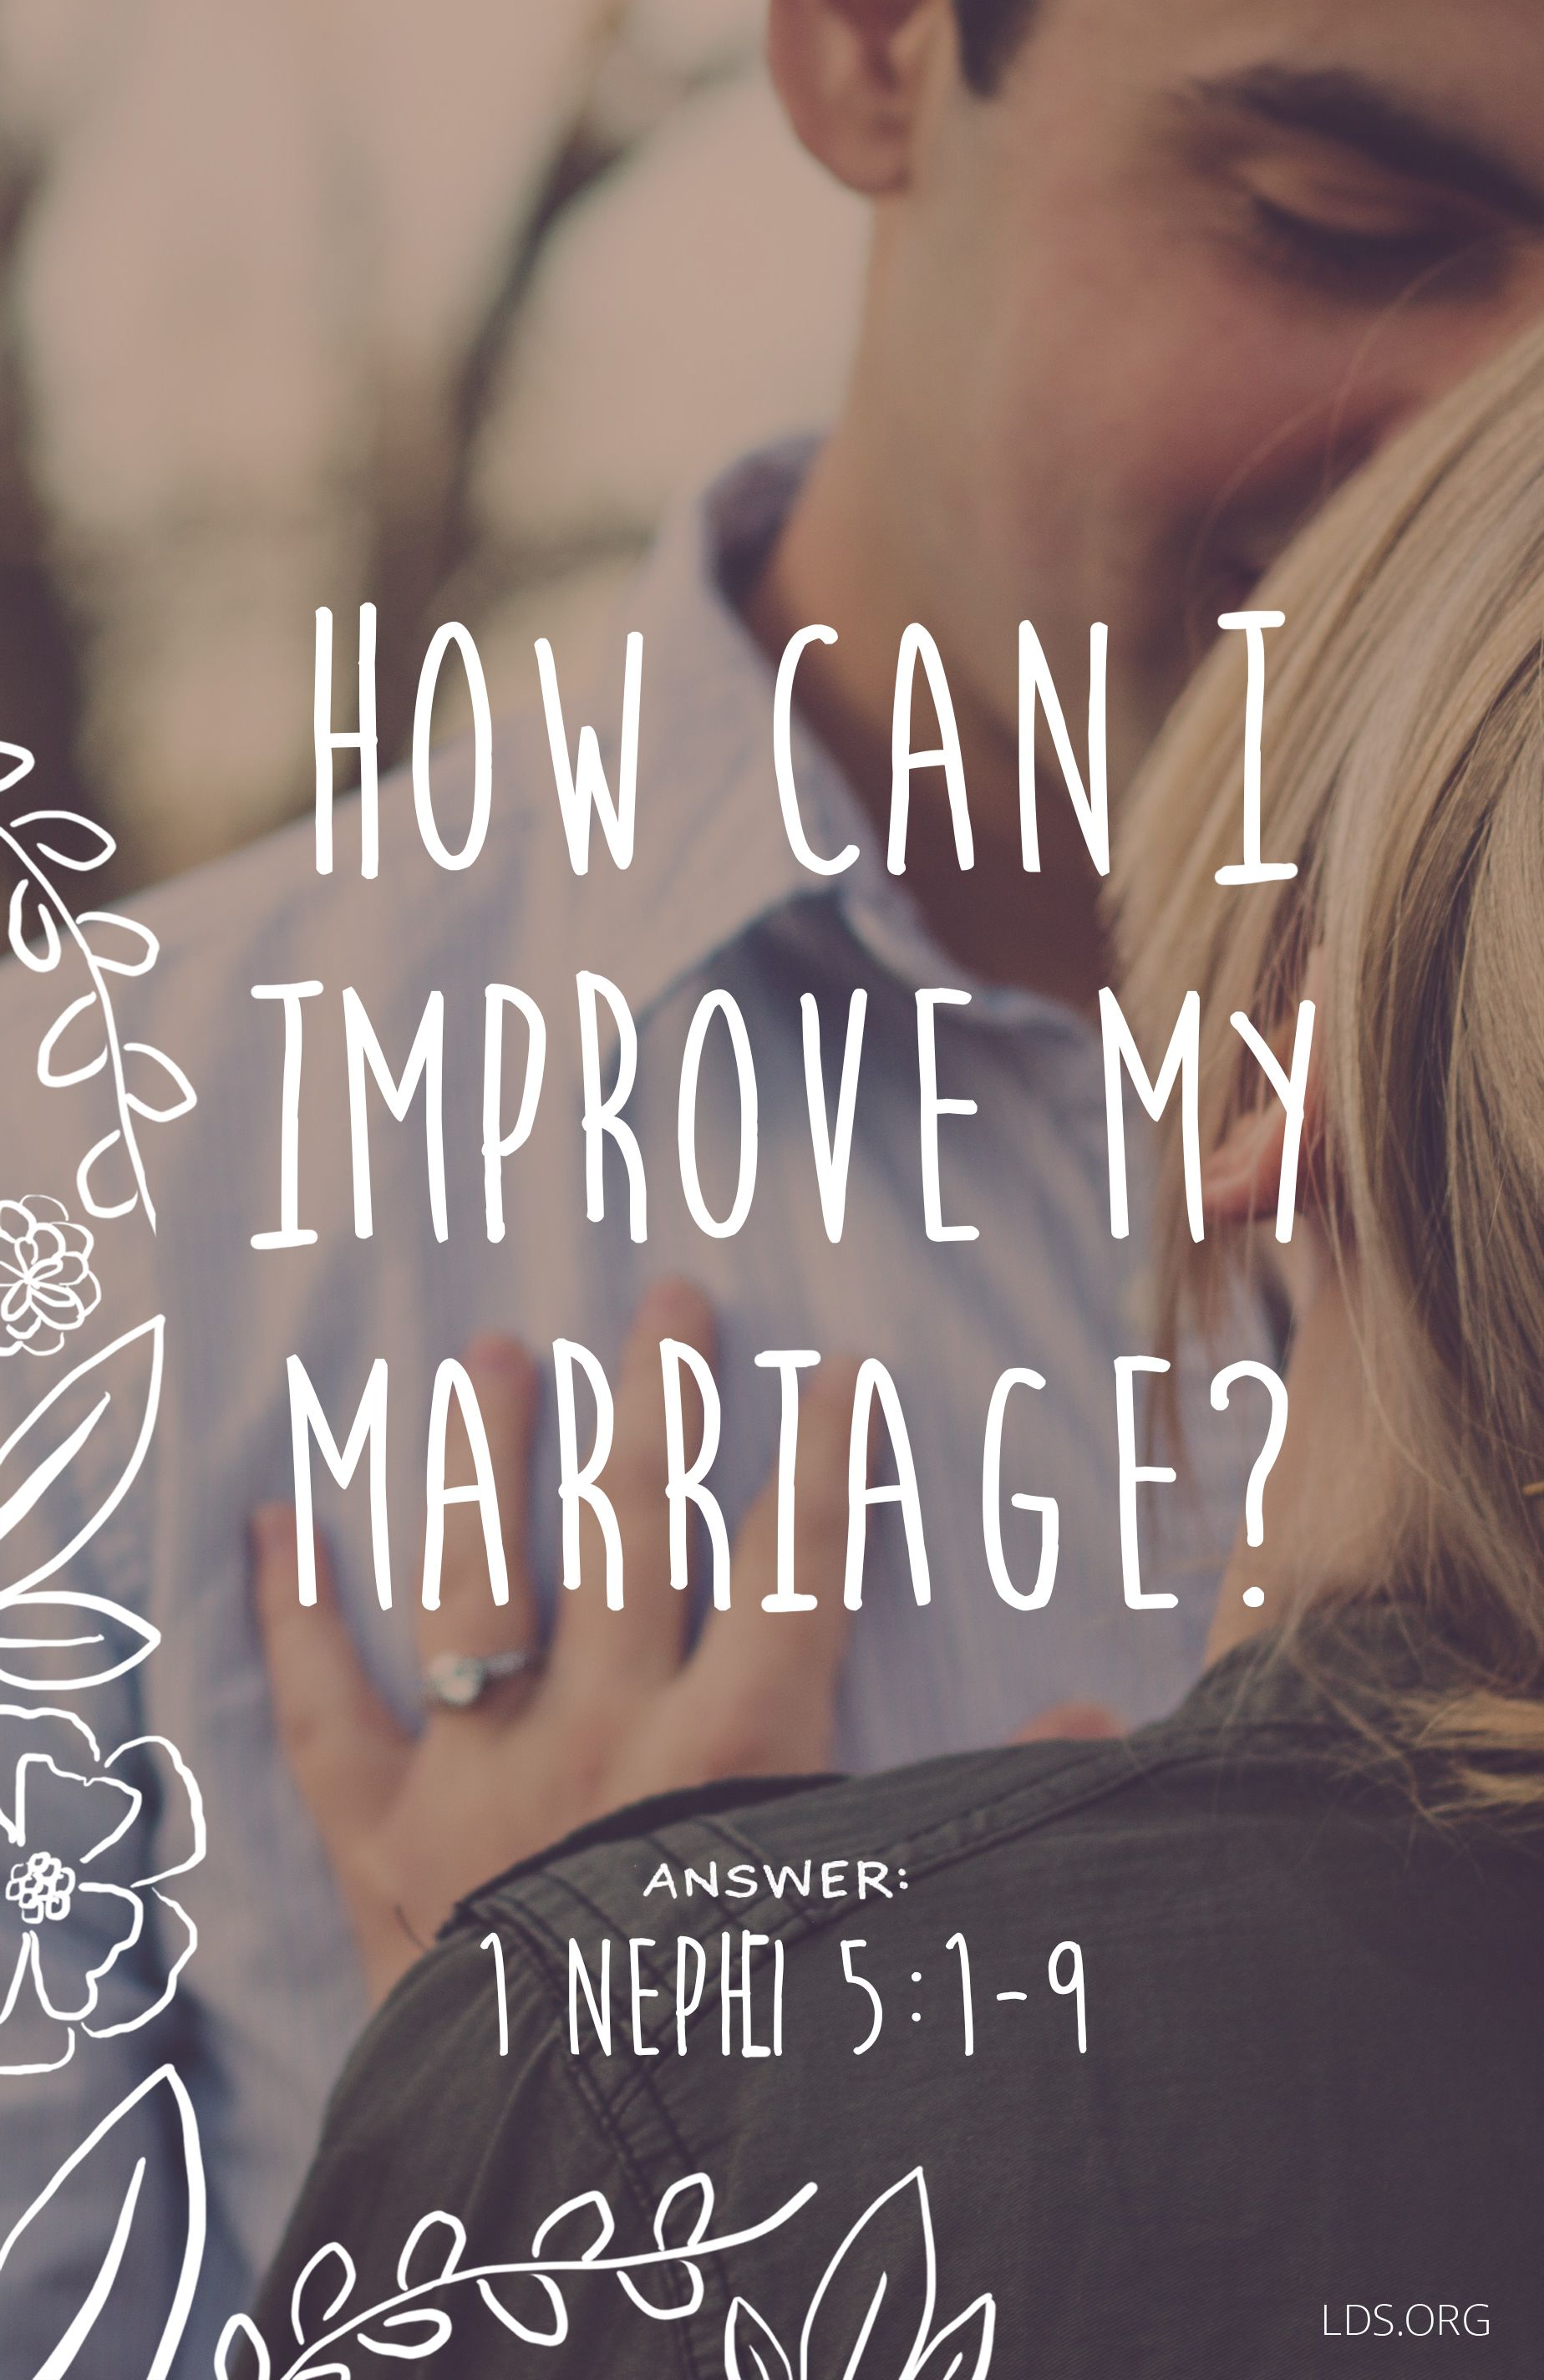 Improving marriage?...Always a good thing...never hurts to